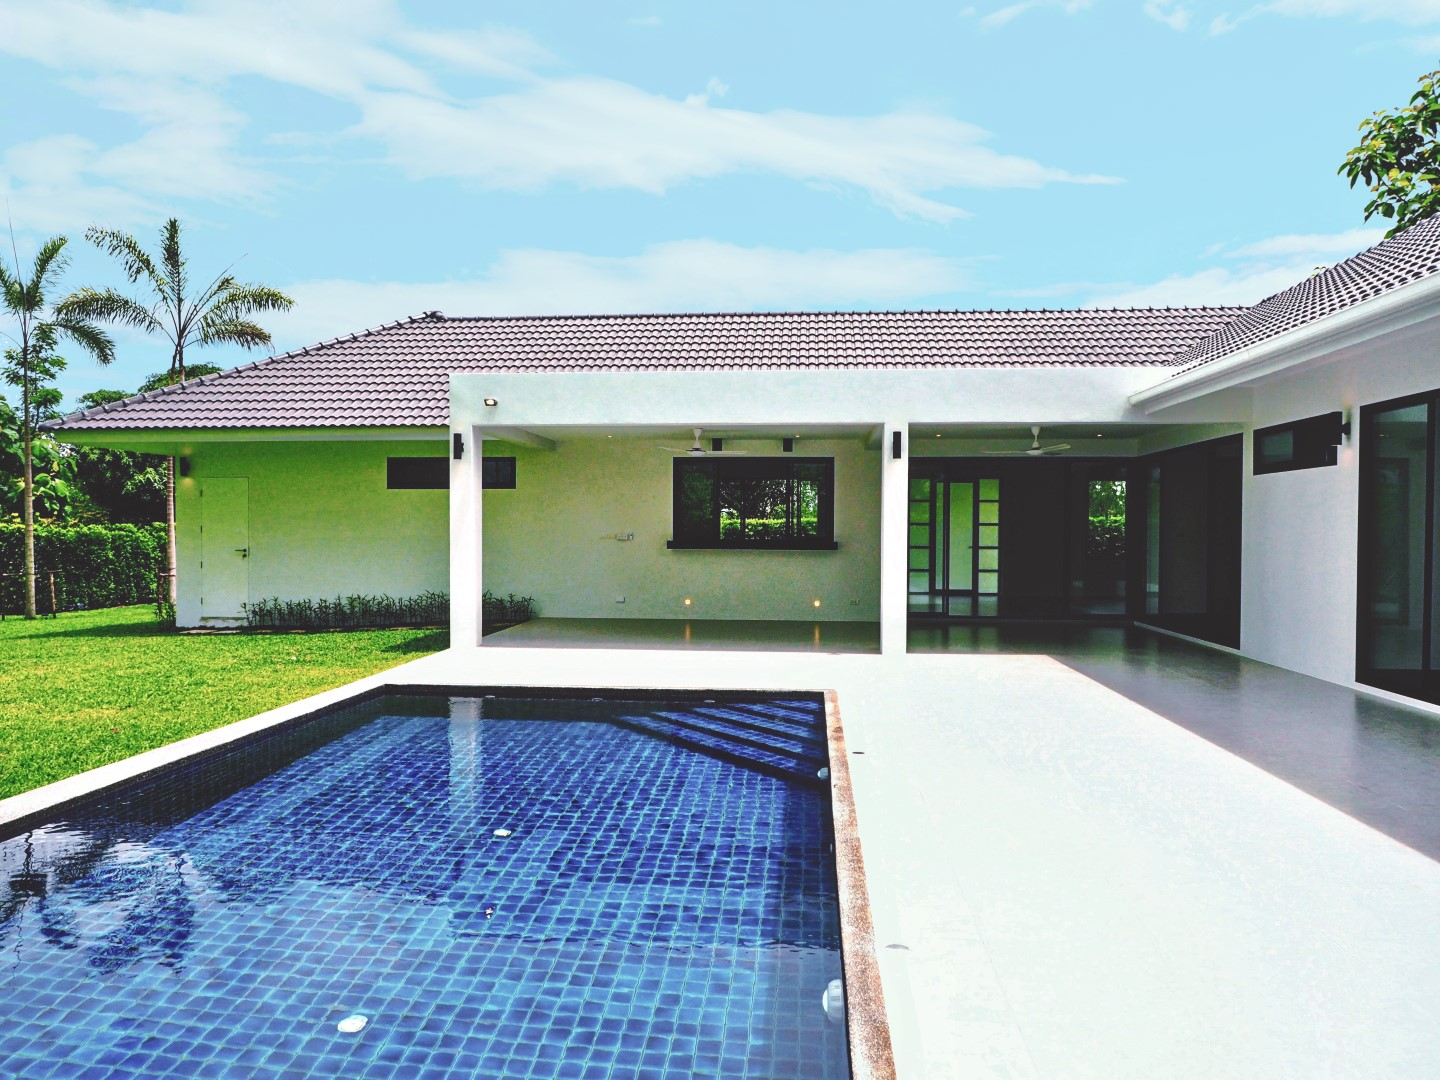 3 Bedroom L Shaped Pool House For Sale In Namphrae Stayments